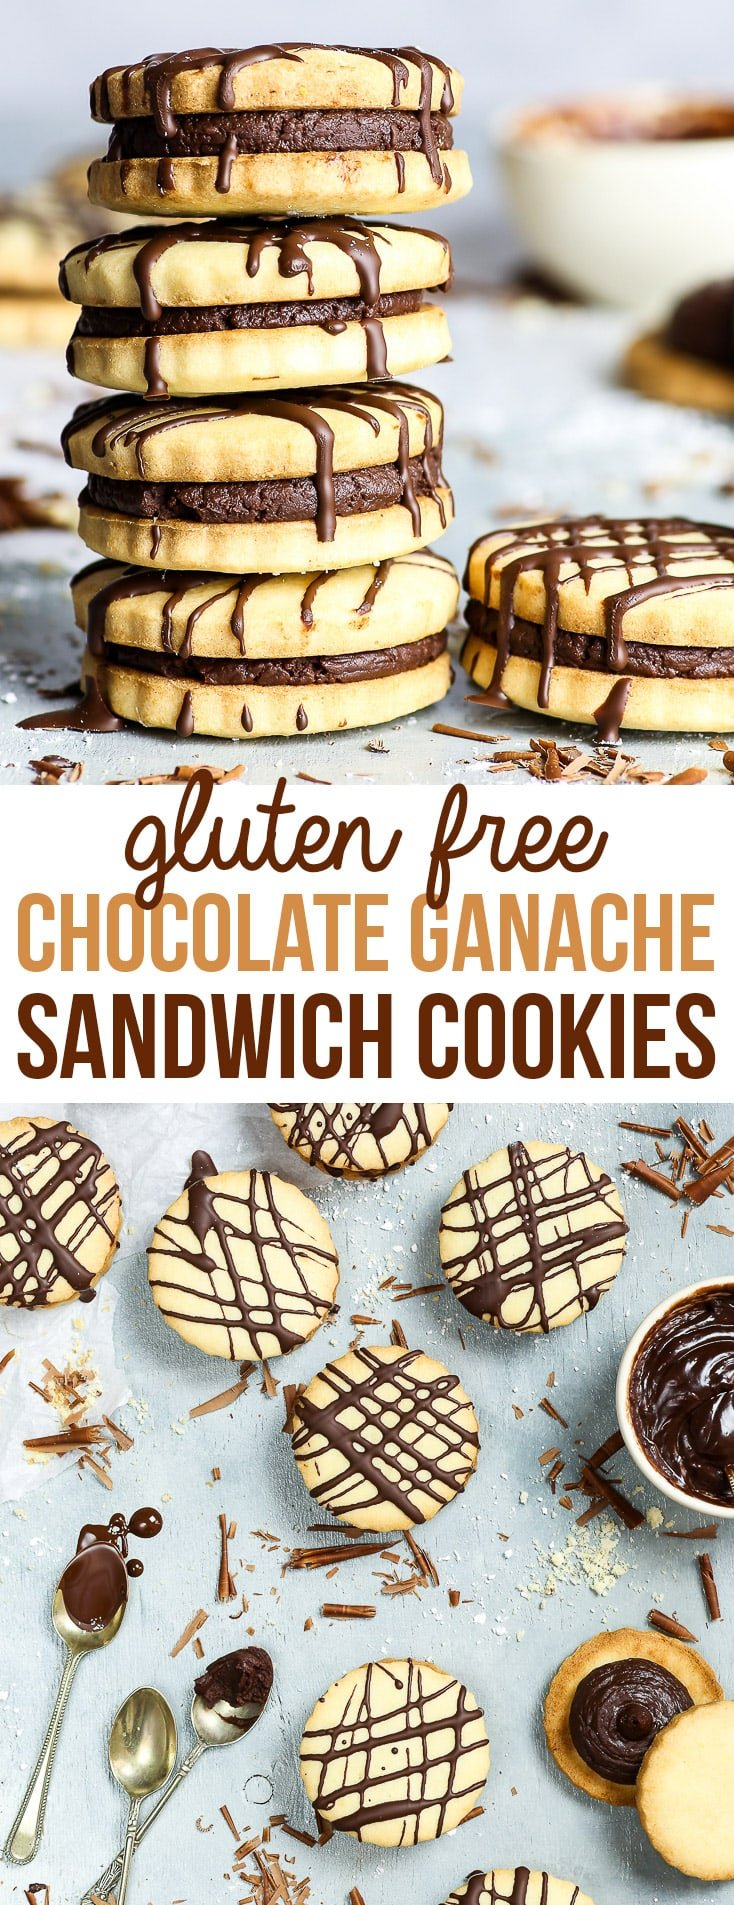 Gluten Free Chocolate Sandwich Cookies - You'll love these gluten free chocolate sandwich cookies, with their decadent, rich dark chocolate ganache filling and the crumbly, buttery gluten free cookies. They're super simple to make and look absolutely amazing – like something straight out of a food magazine! Easy gluten free dessert recipe. Chocolate cookies. Cookie sandwich. #glutenfree #recipe #cookies #chocolate #dessert #food